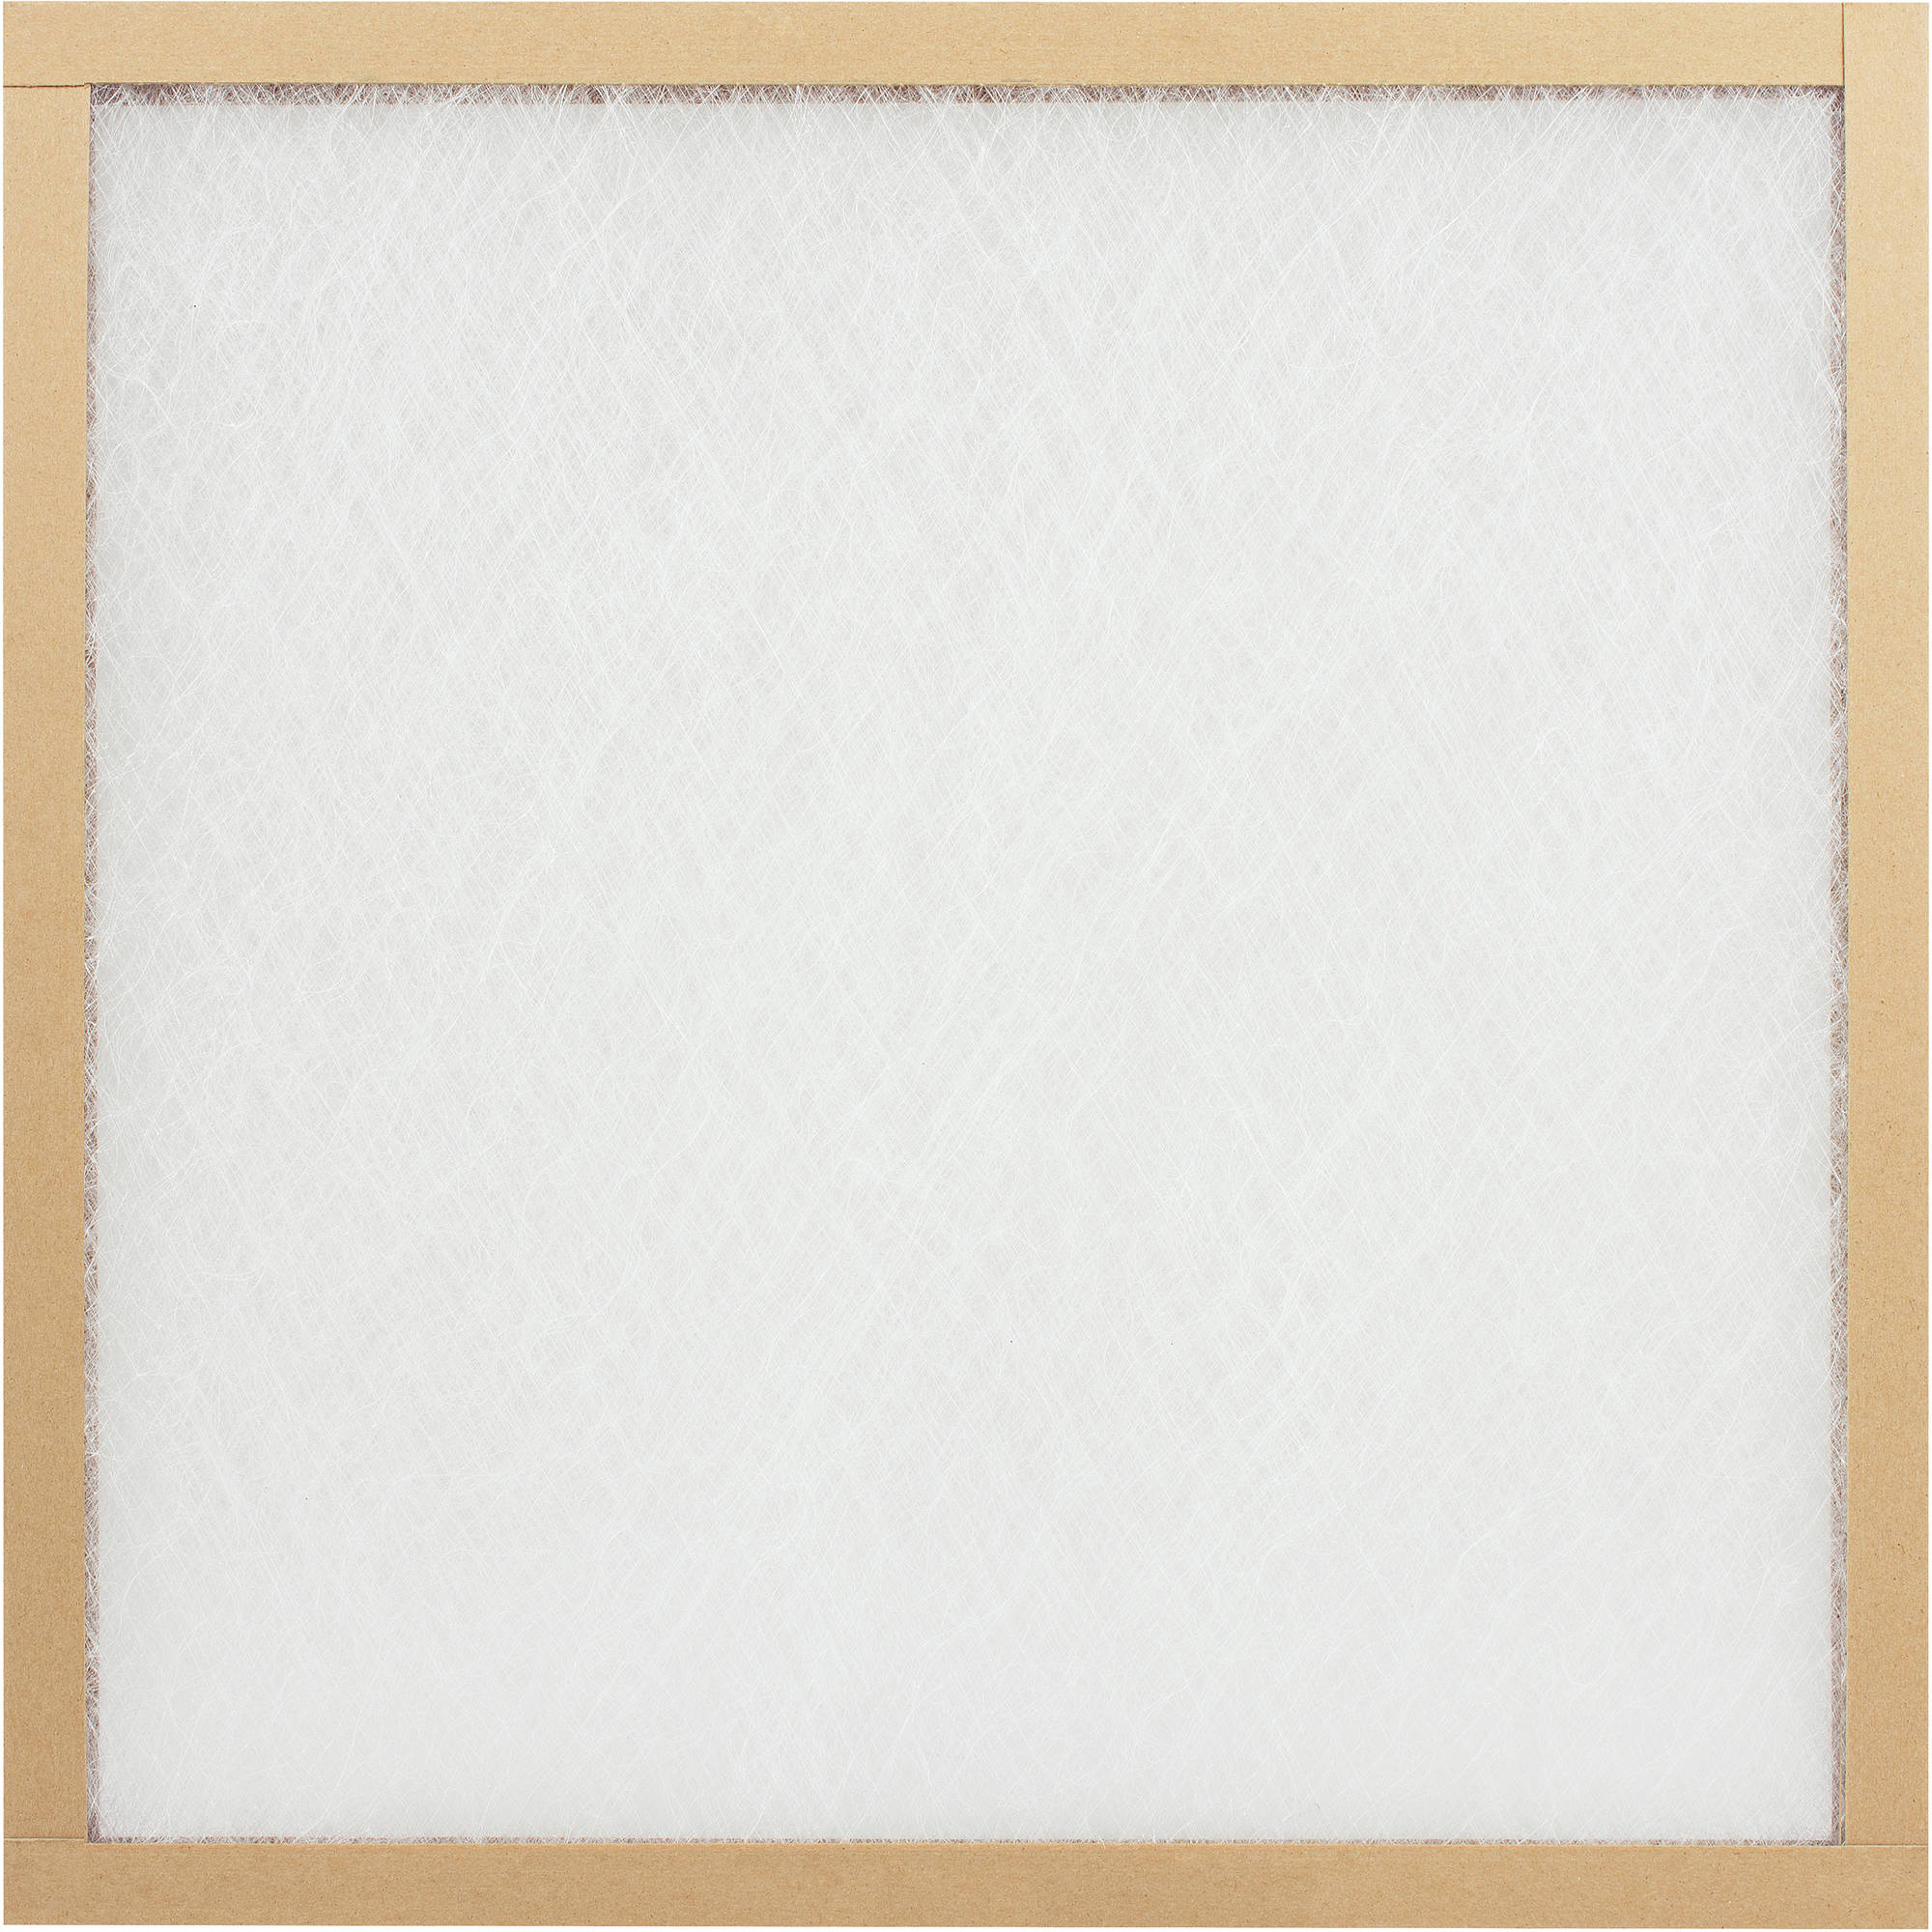 16X25X1 Fbg Furn Filter, Pack of 12 by Generic